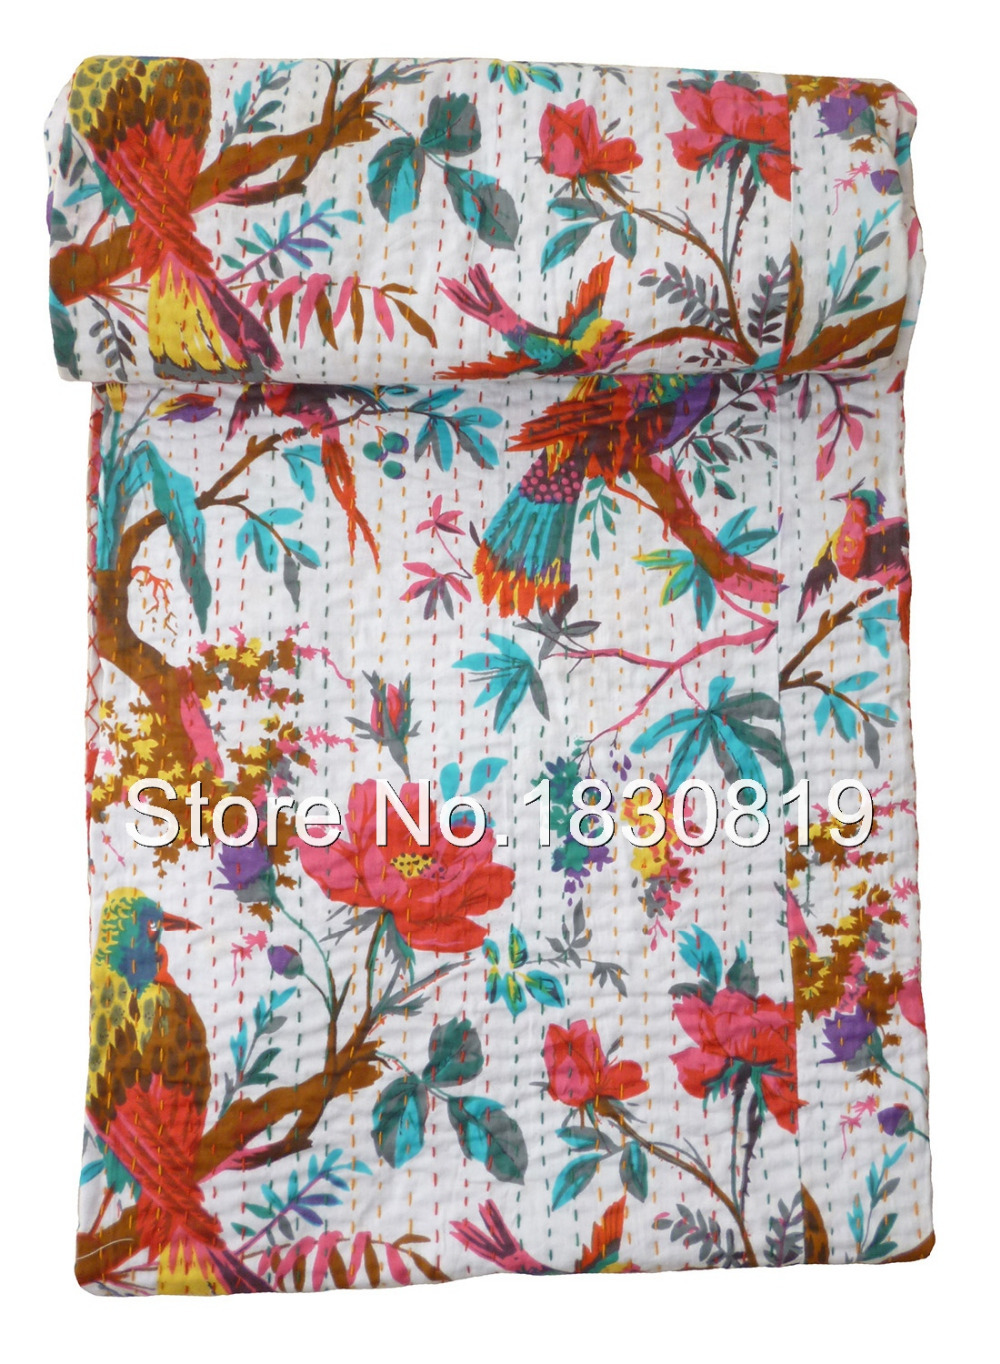 Indian Bird of Paradise Kantha Quilt, Bohemian Kantha Rallies, Reversible Bedsheet/Bedspread (KING Size, 100% Premium Quality).